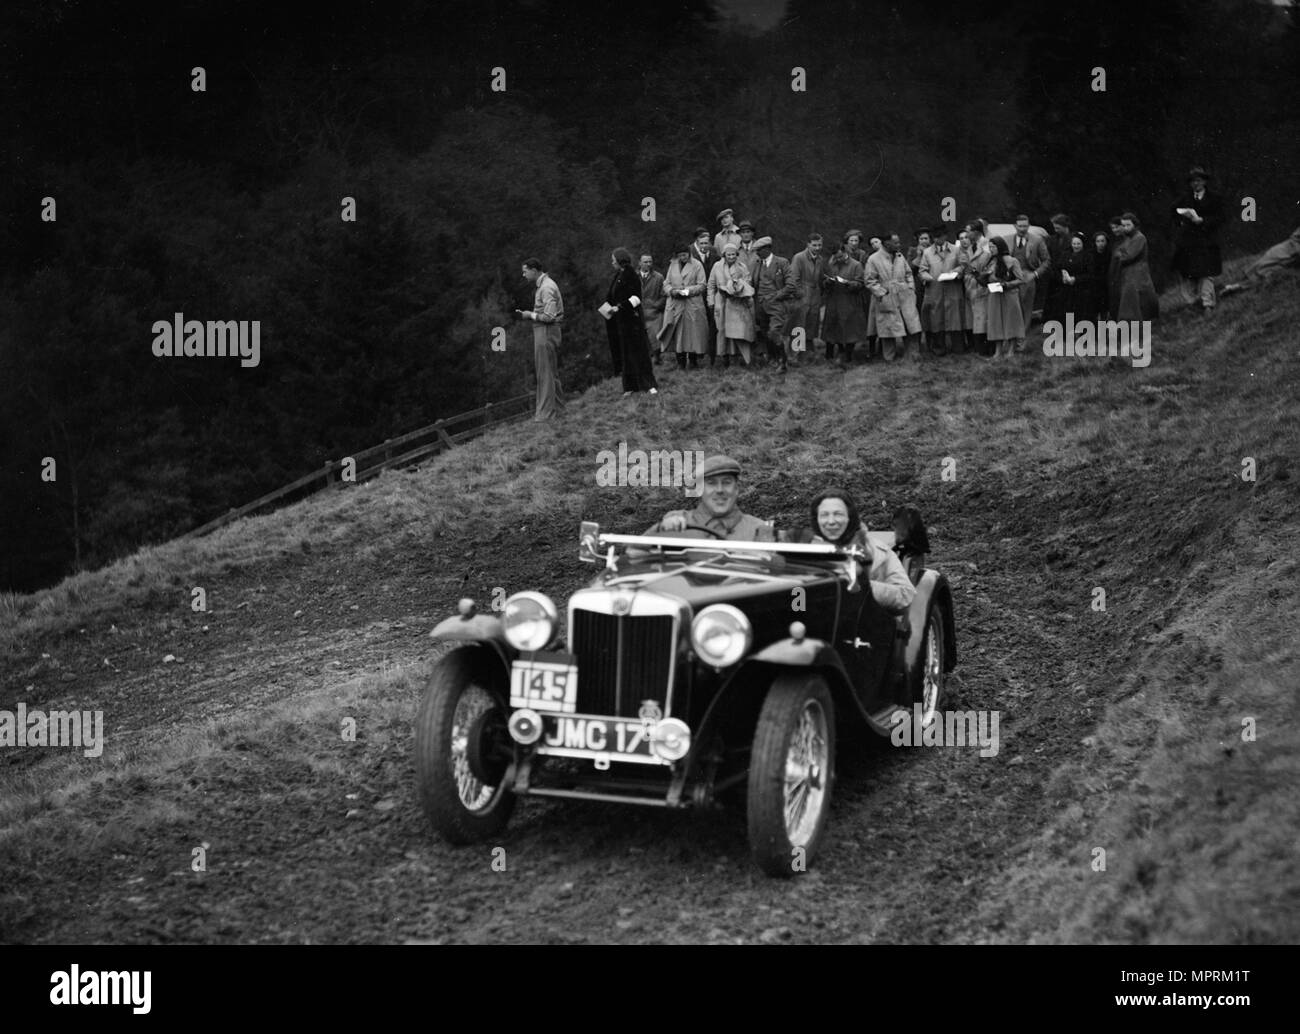 MG TA of H Stevens competing in the MCC Edinburgh Trial, Roxburghshire, Scotland, 1938. Artist: Bill Brunell. - Stock Image